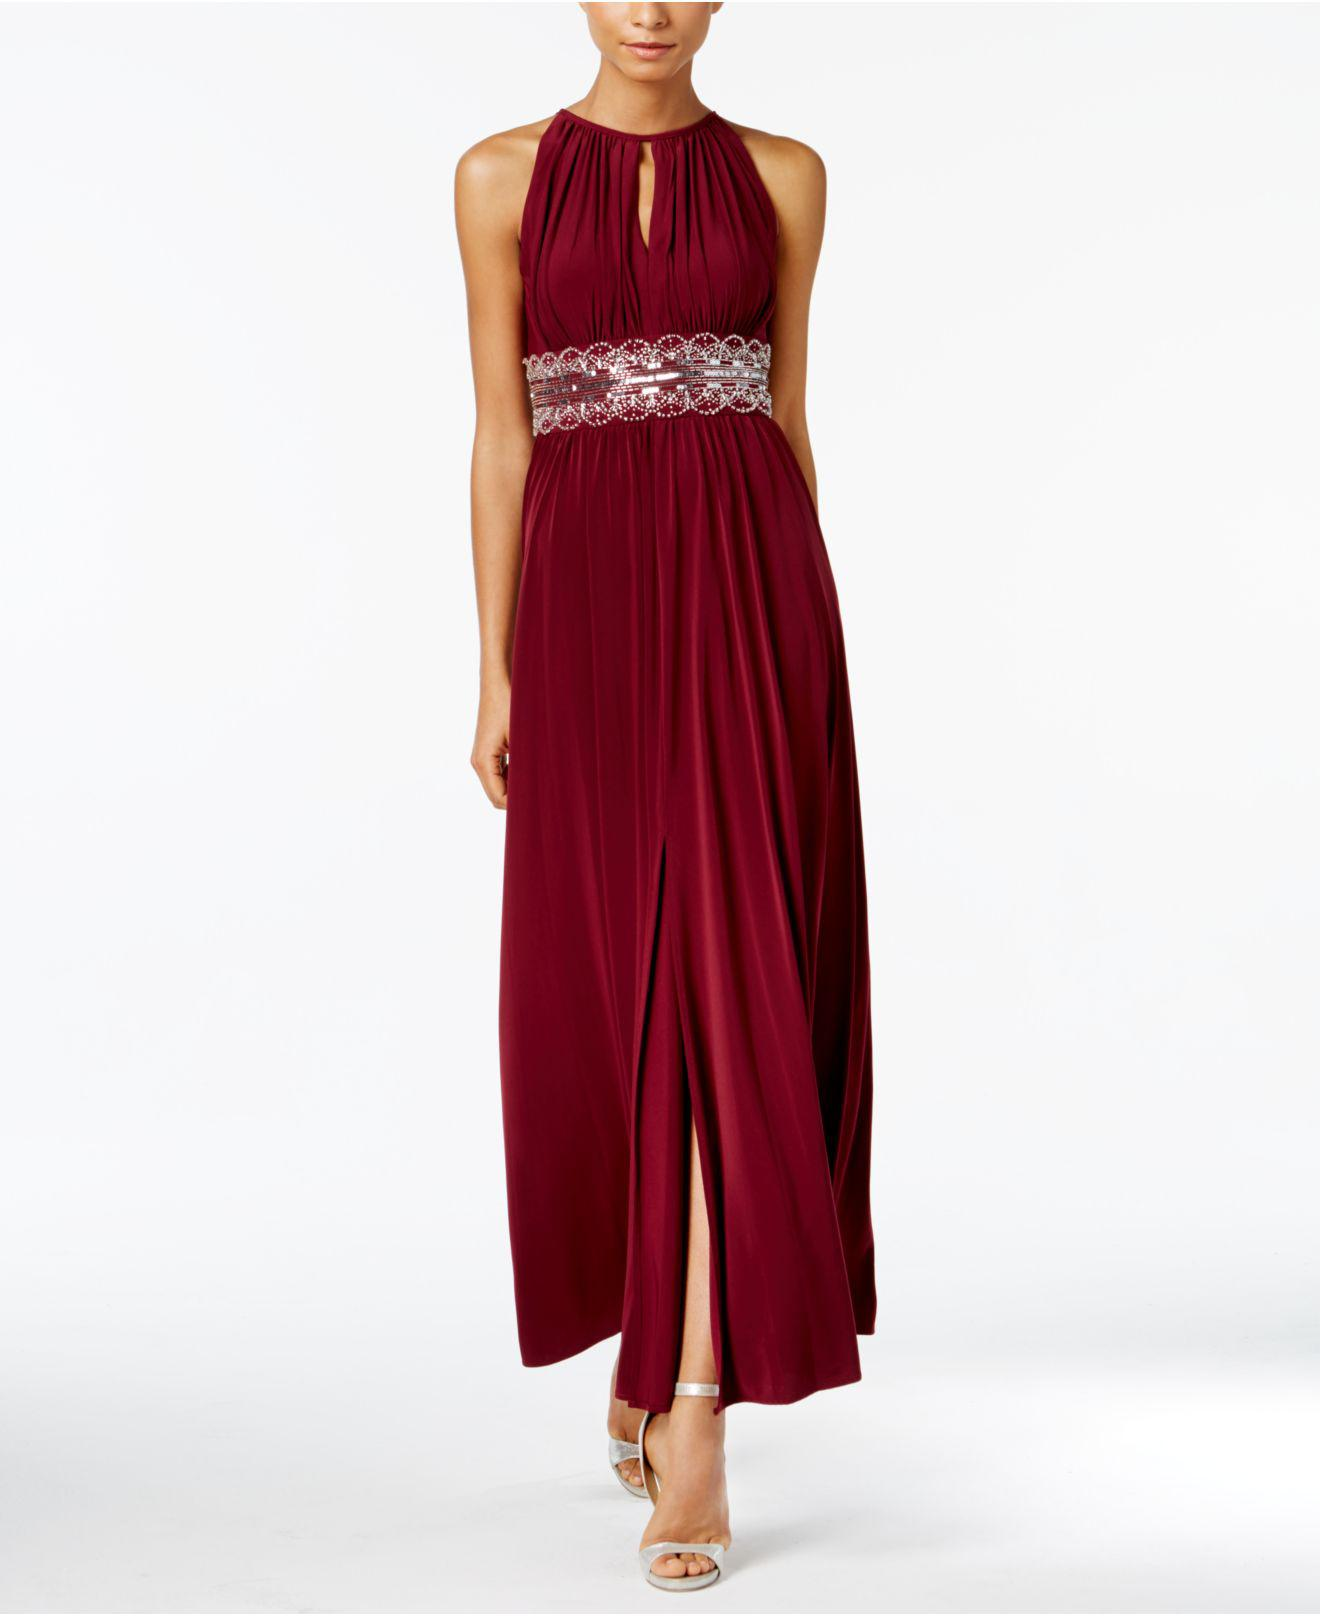 Lyst - R & M Richards Dress, Sleeveless Beaded Evening Gown in Red